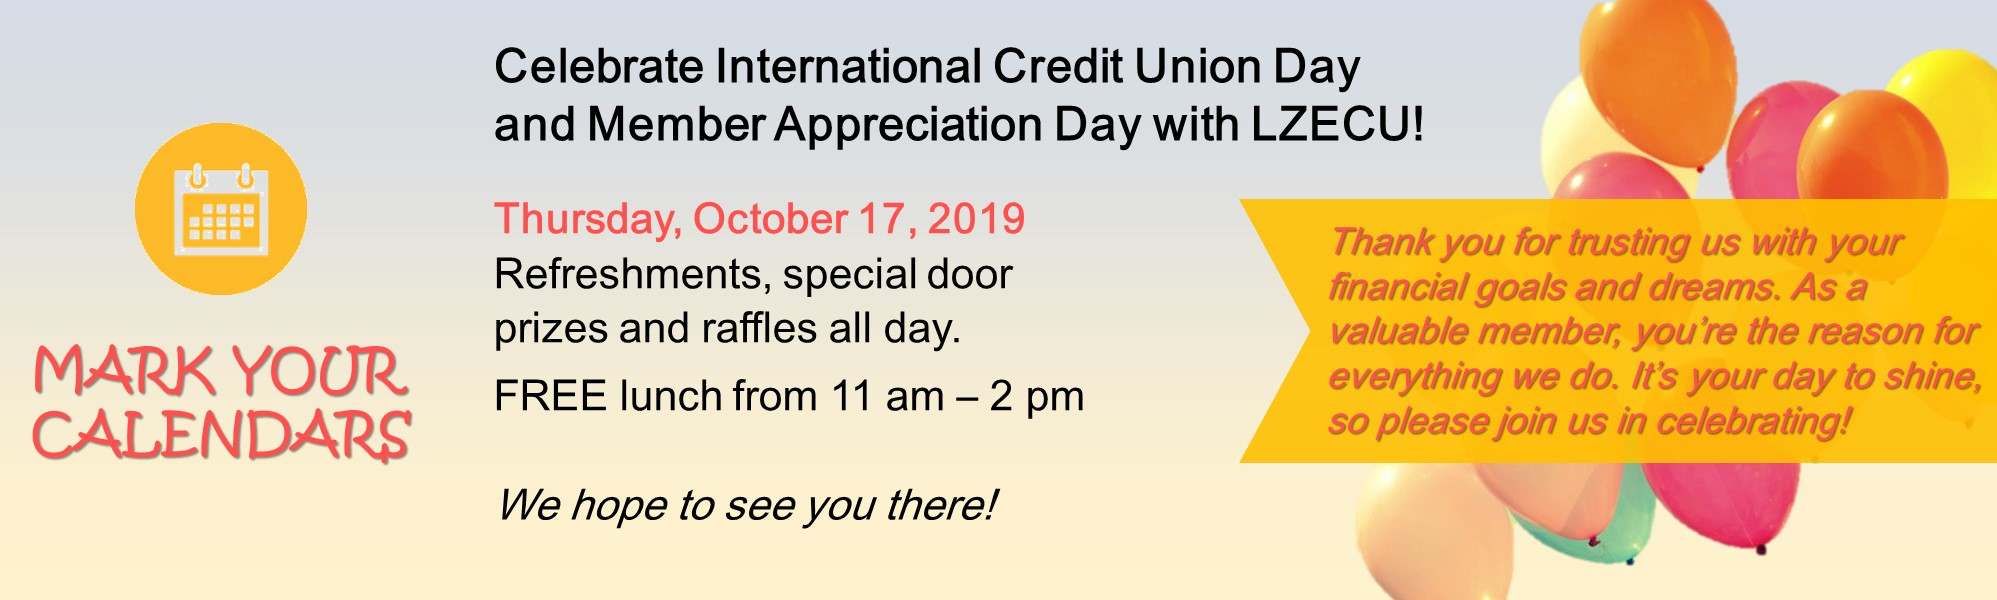 member appreciation day October 17, 2019. Free lunch 11 am - 2 pm. giveaways and door prizes.